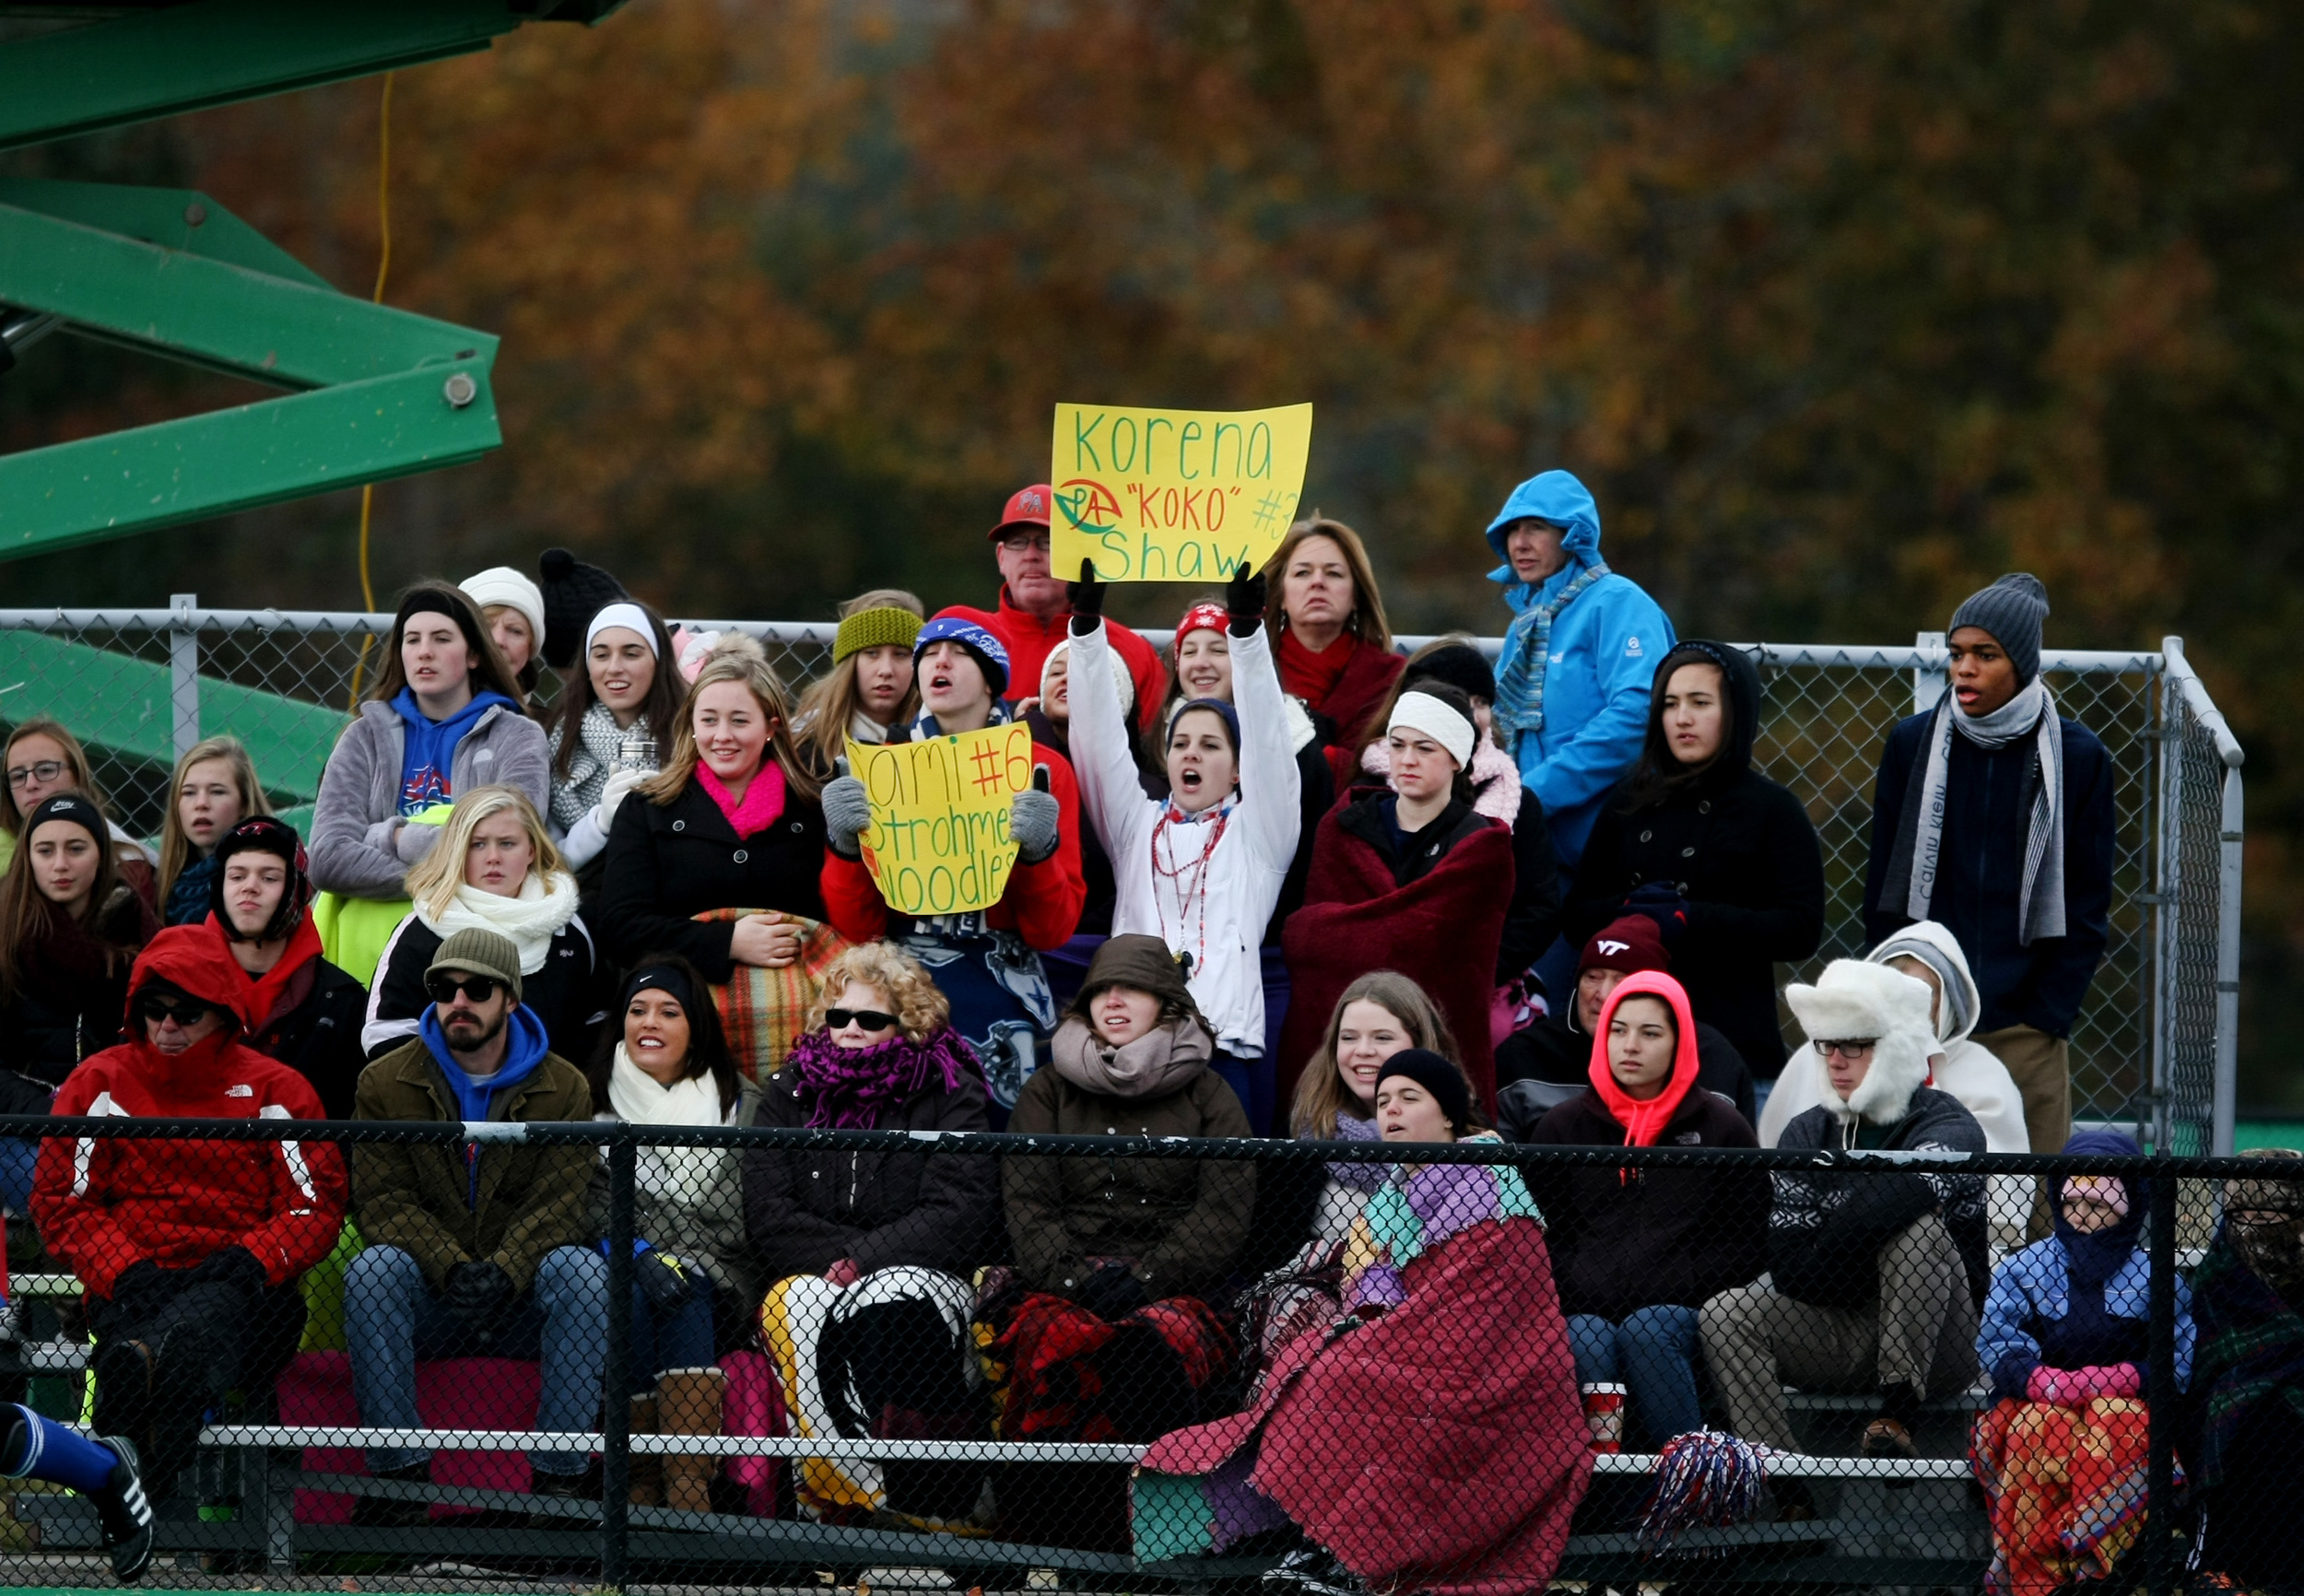 Fans cheer on the Princess Anne Cavaliers in the closing minutes of their 2-1 win over Mountain View to claim the State title, Saturday, Nov. 16, 2014 at the National Training Center in Virginia Beach.  (Jason Hirschfeld | For The Virginian-Pilot)